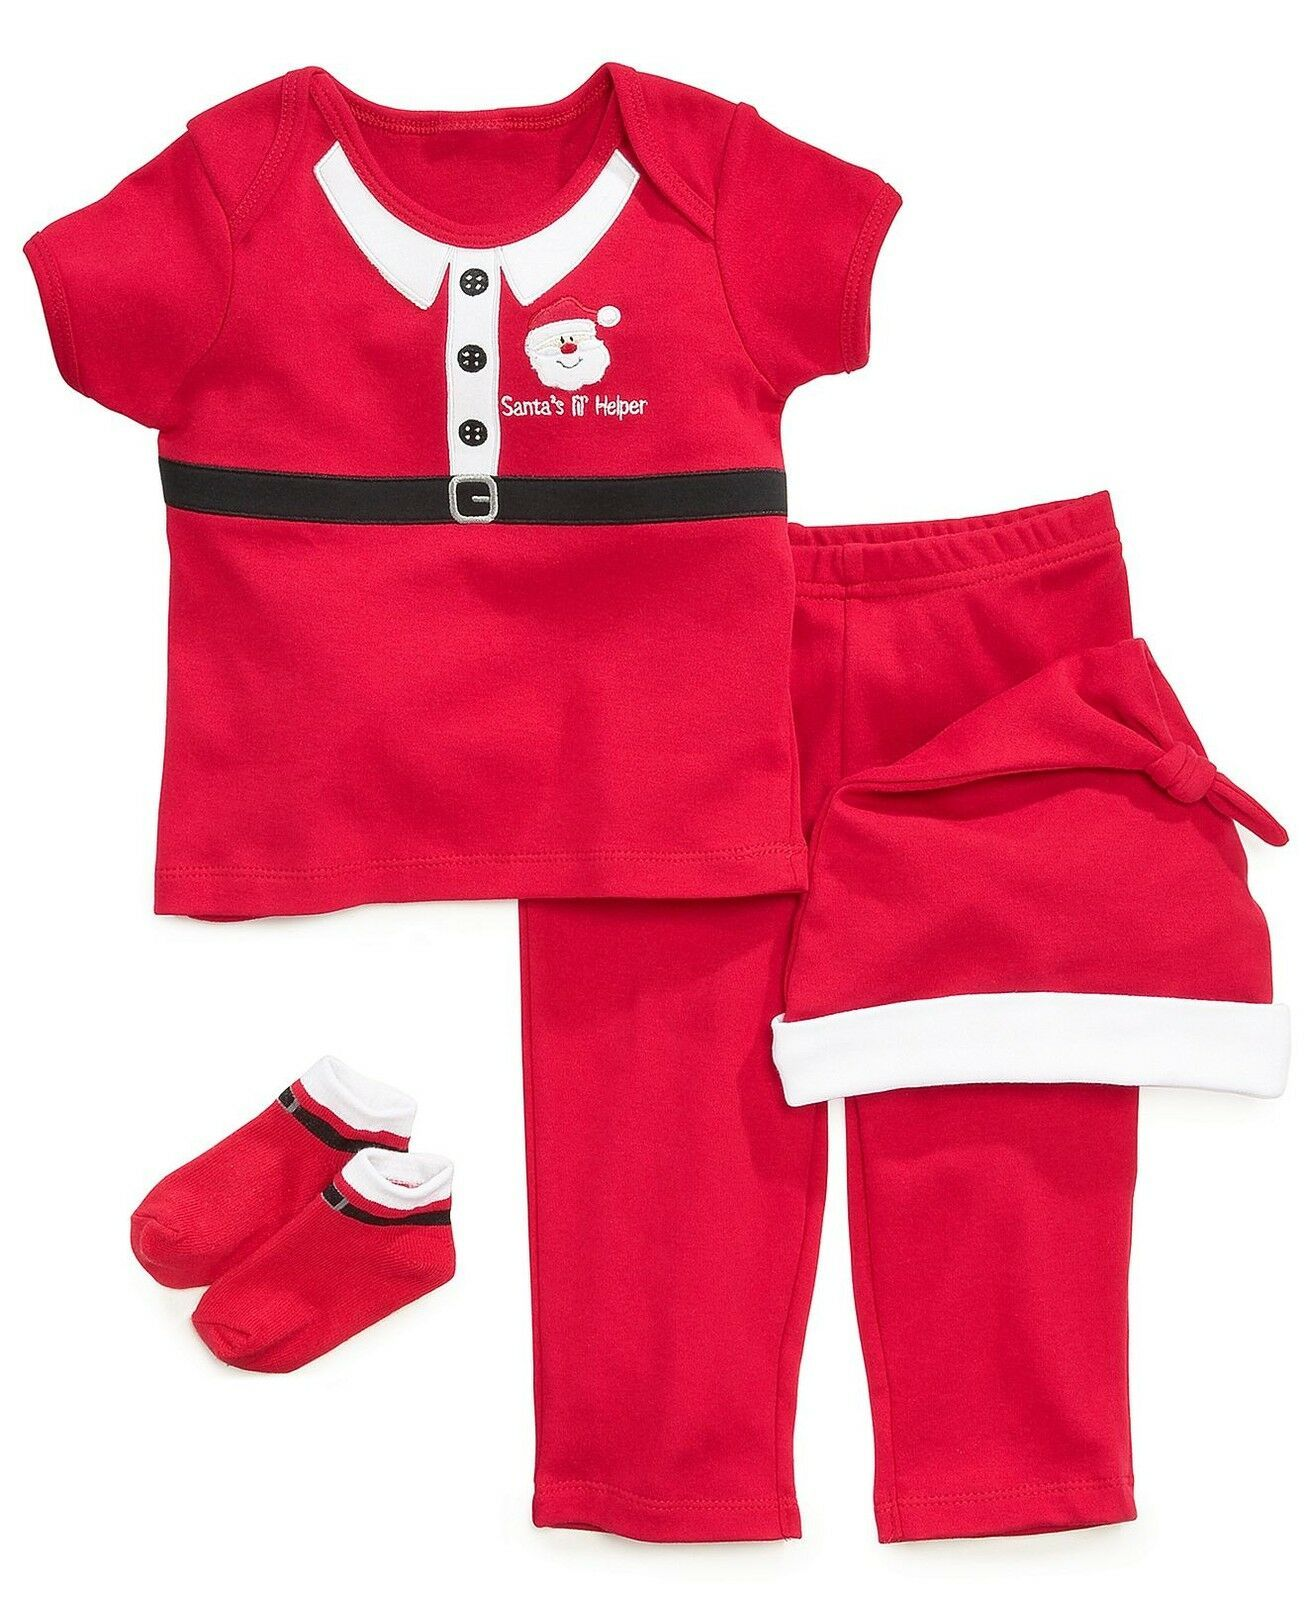 NEW Boys First Impressions 0-6 or 6-12 Months Christmas Santa 4 Piece Set  - $8.99